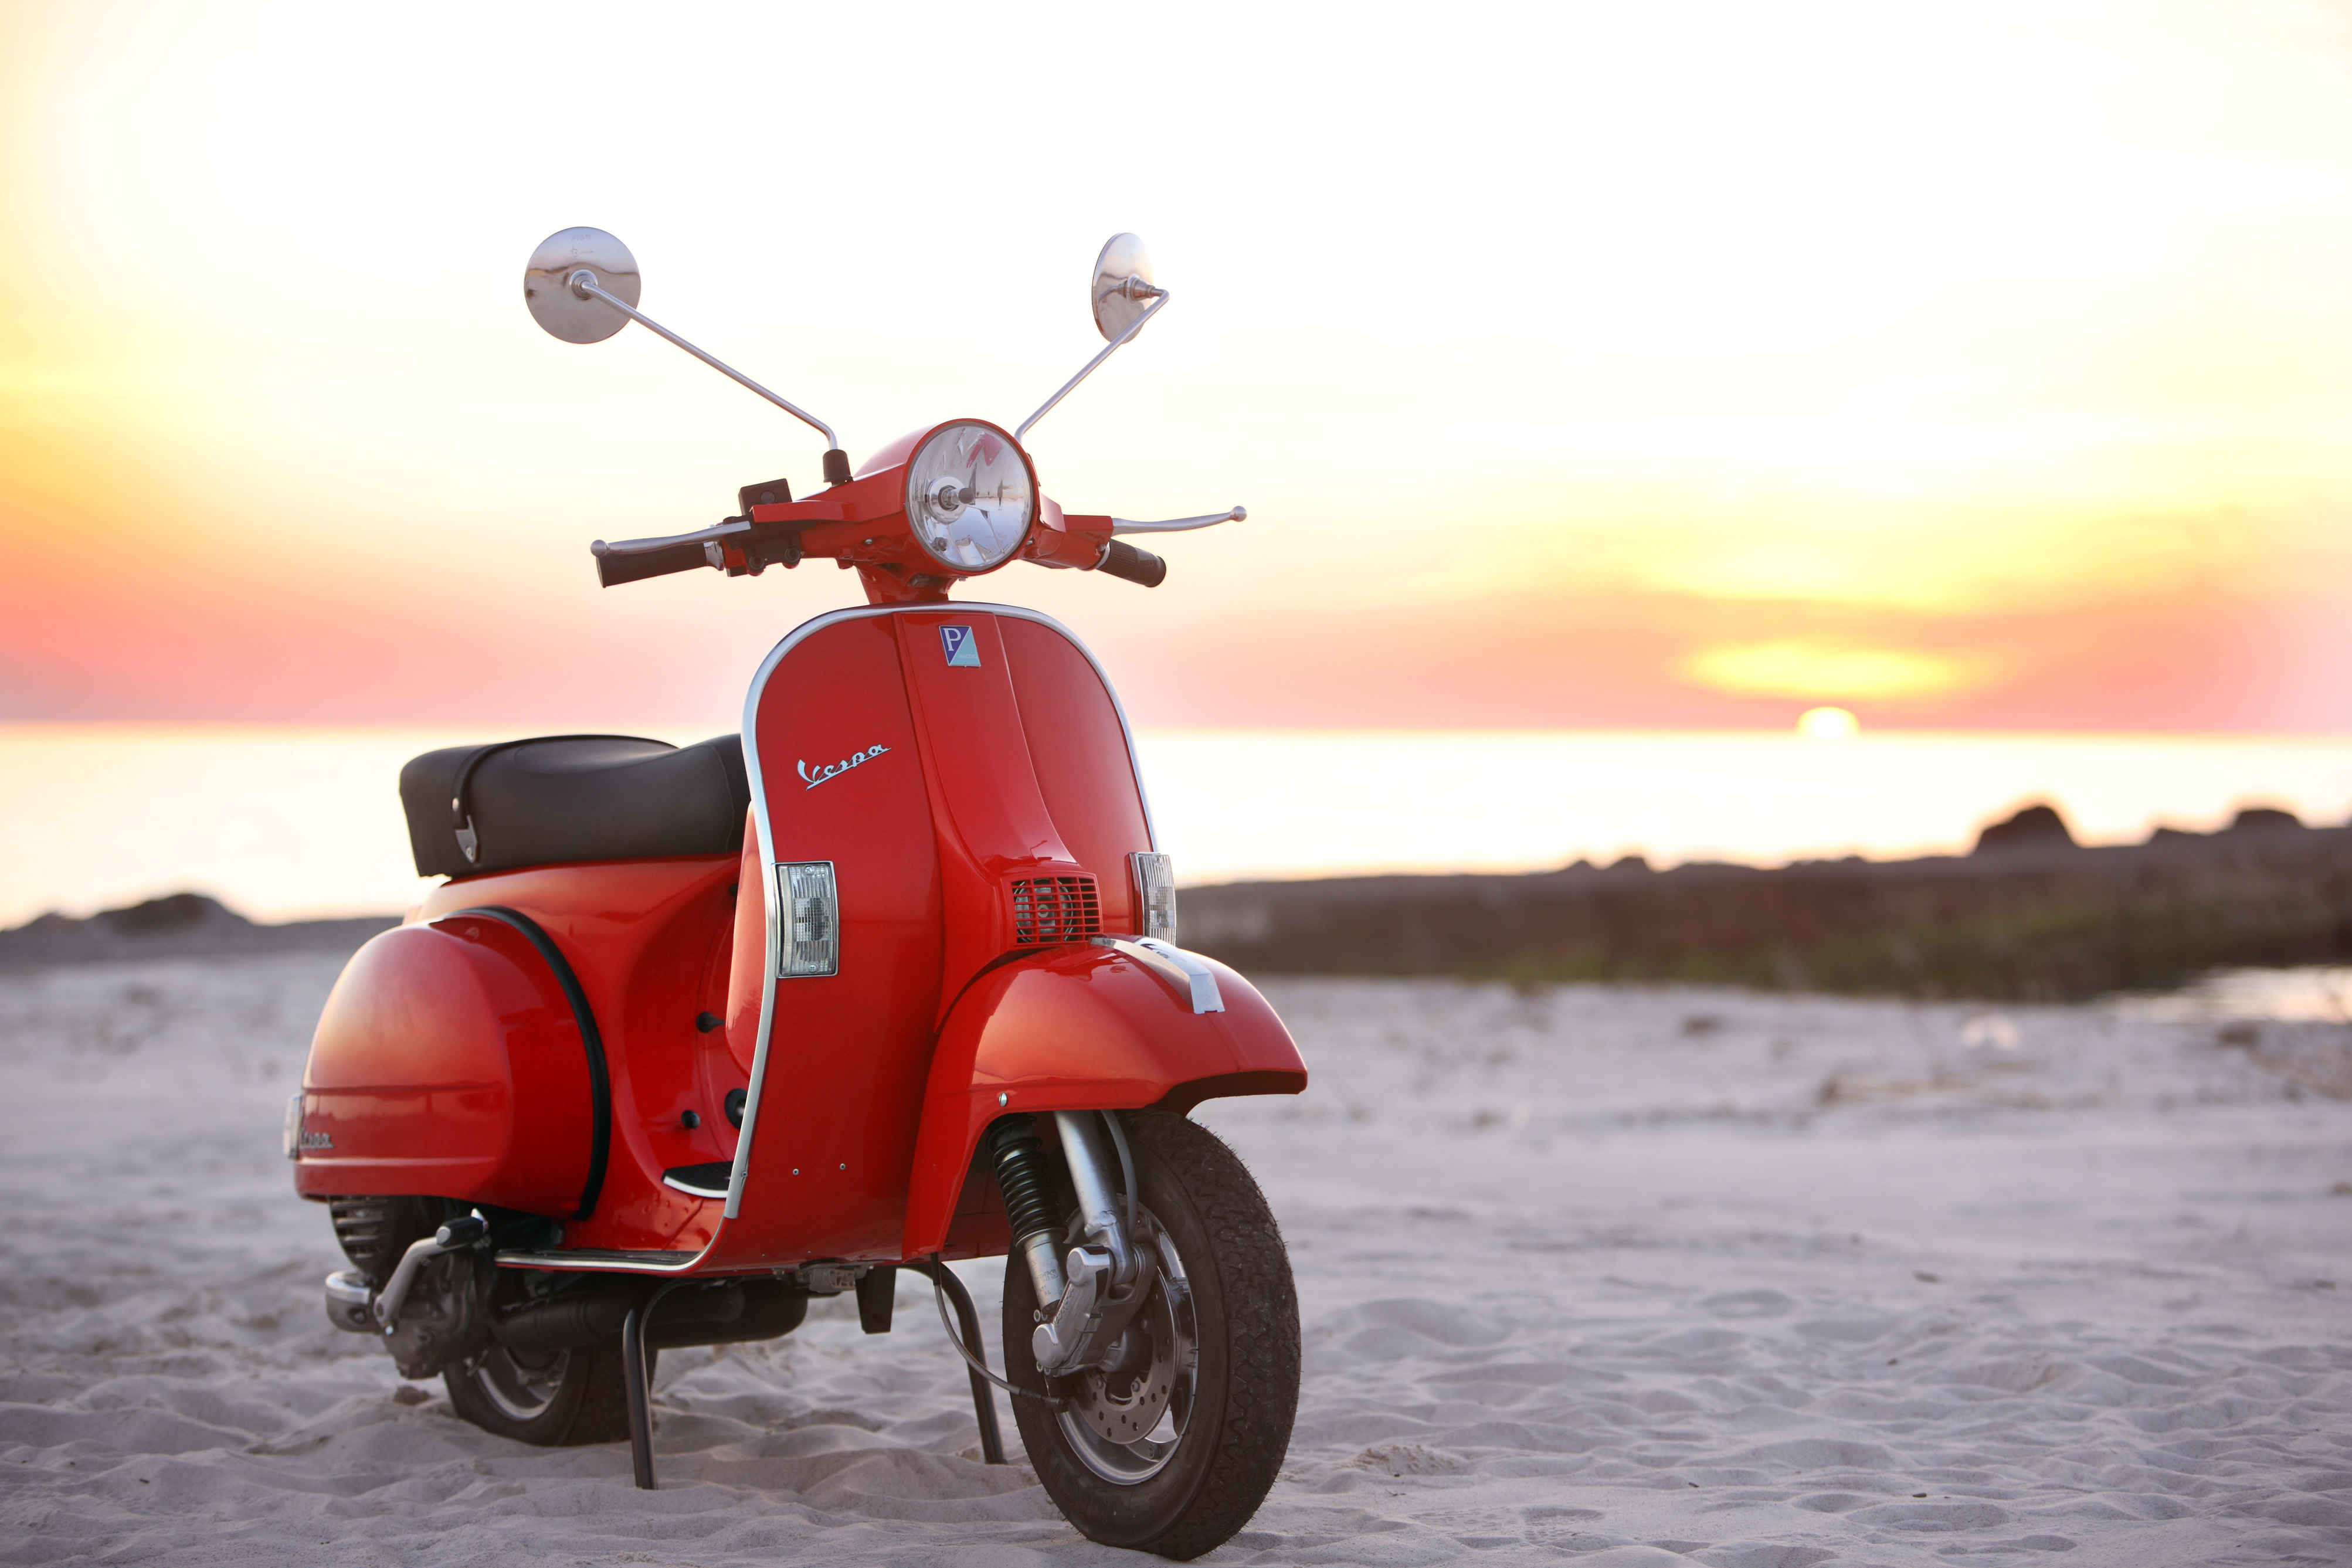 Modern Vespa: The Scooter Is Dressed In Luxury And Latest